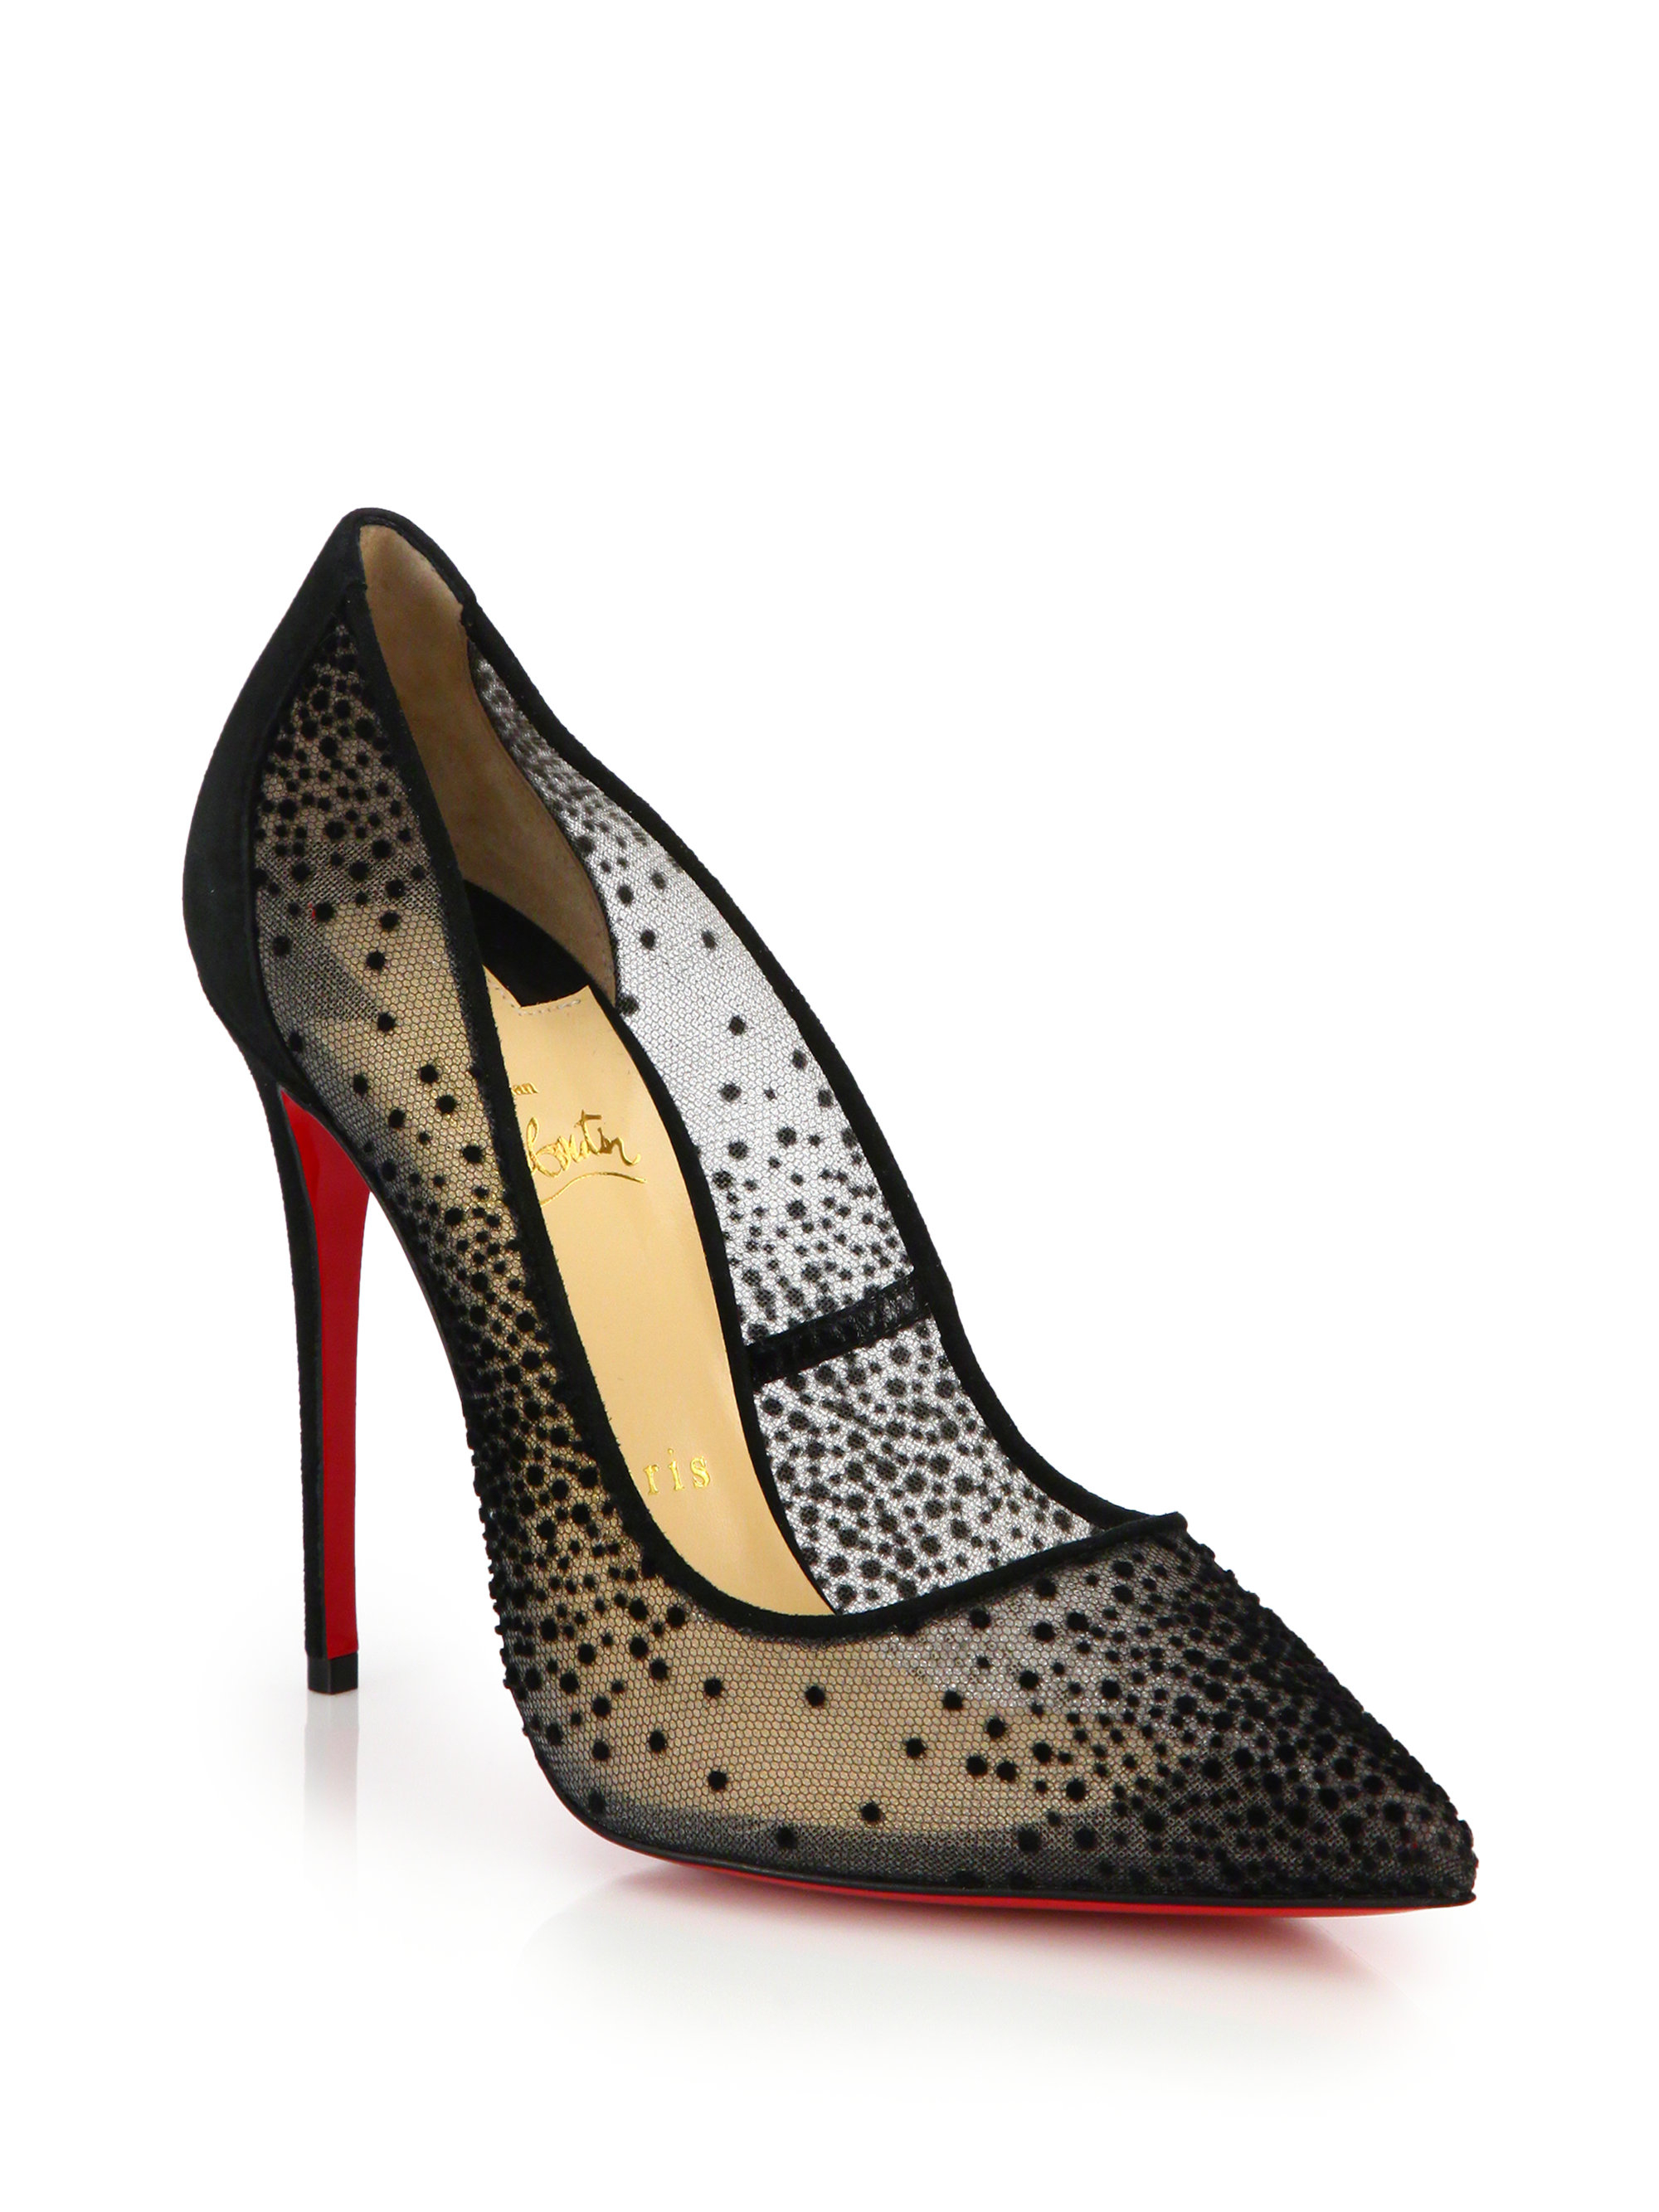 Christian louboutin Silkova Patent Leather \u0026amp; Mesh Sandals in Black ...